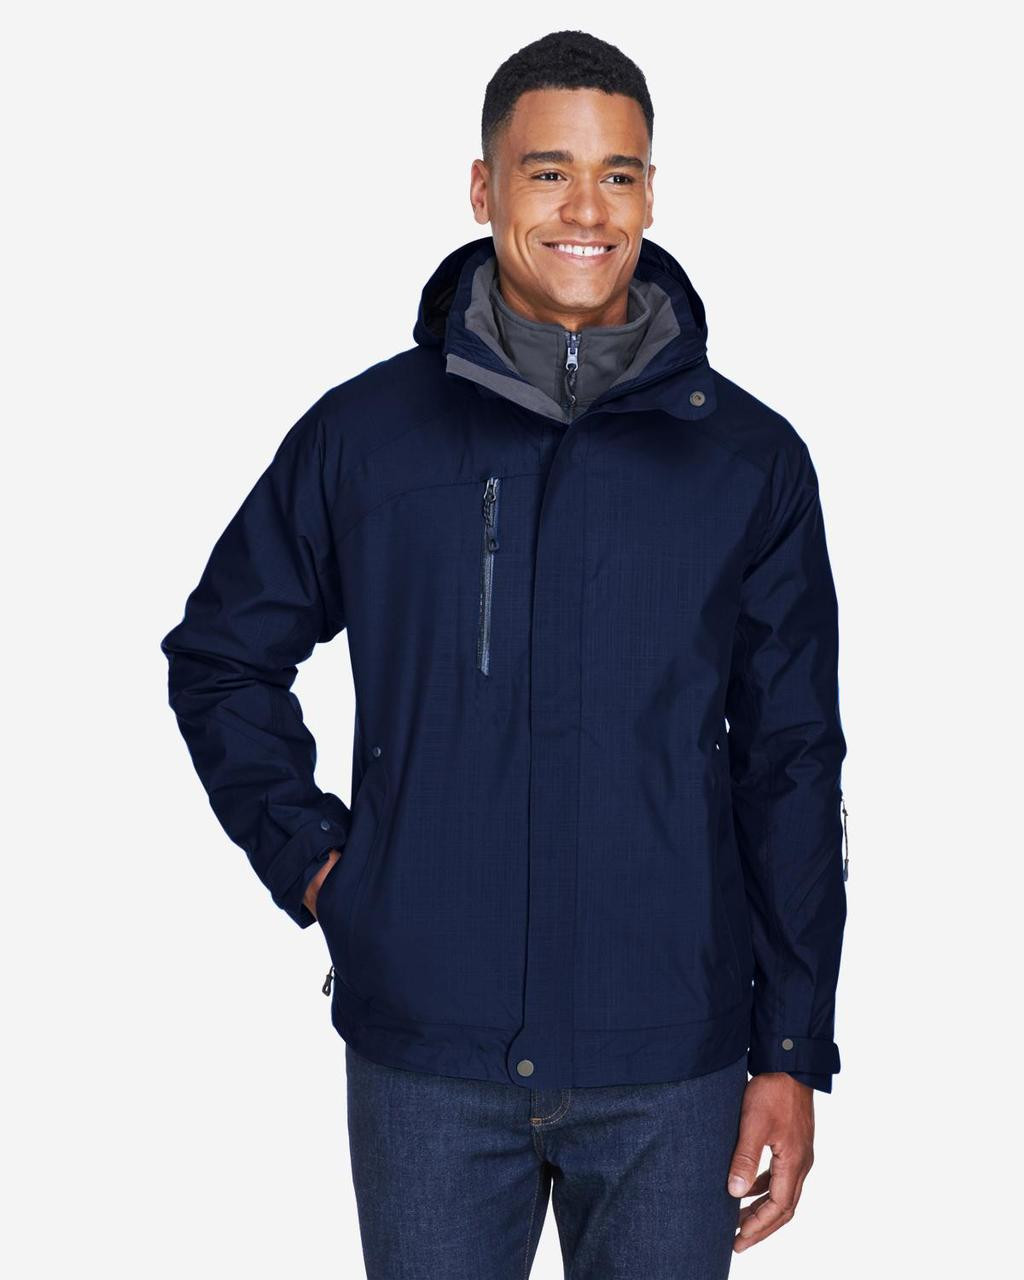 Classic Navy - Front, 88178 North End Caprice 3-in-1 Jacket with Soft Shell Liner | BlankClothing.ca